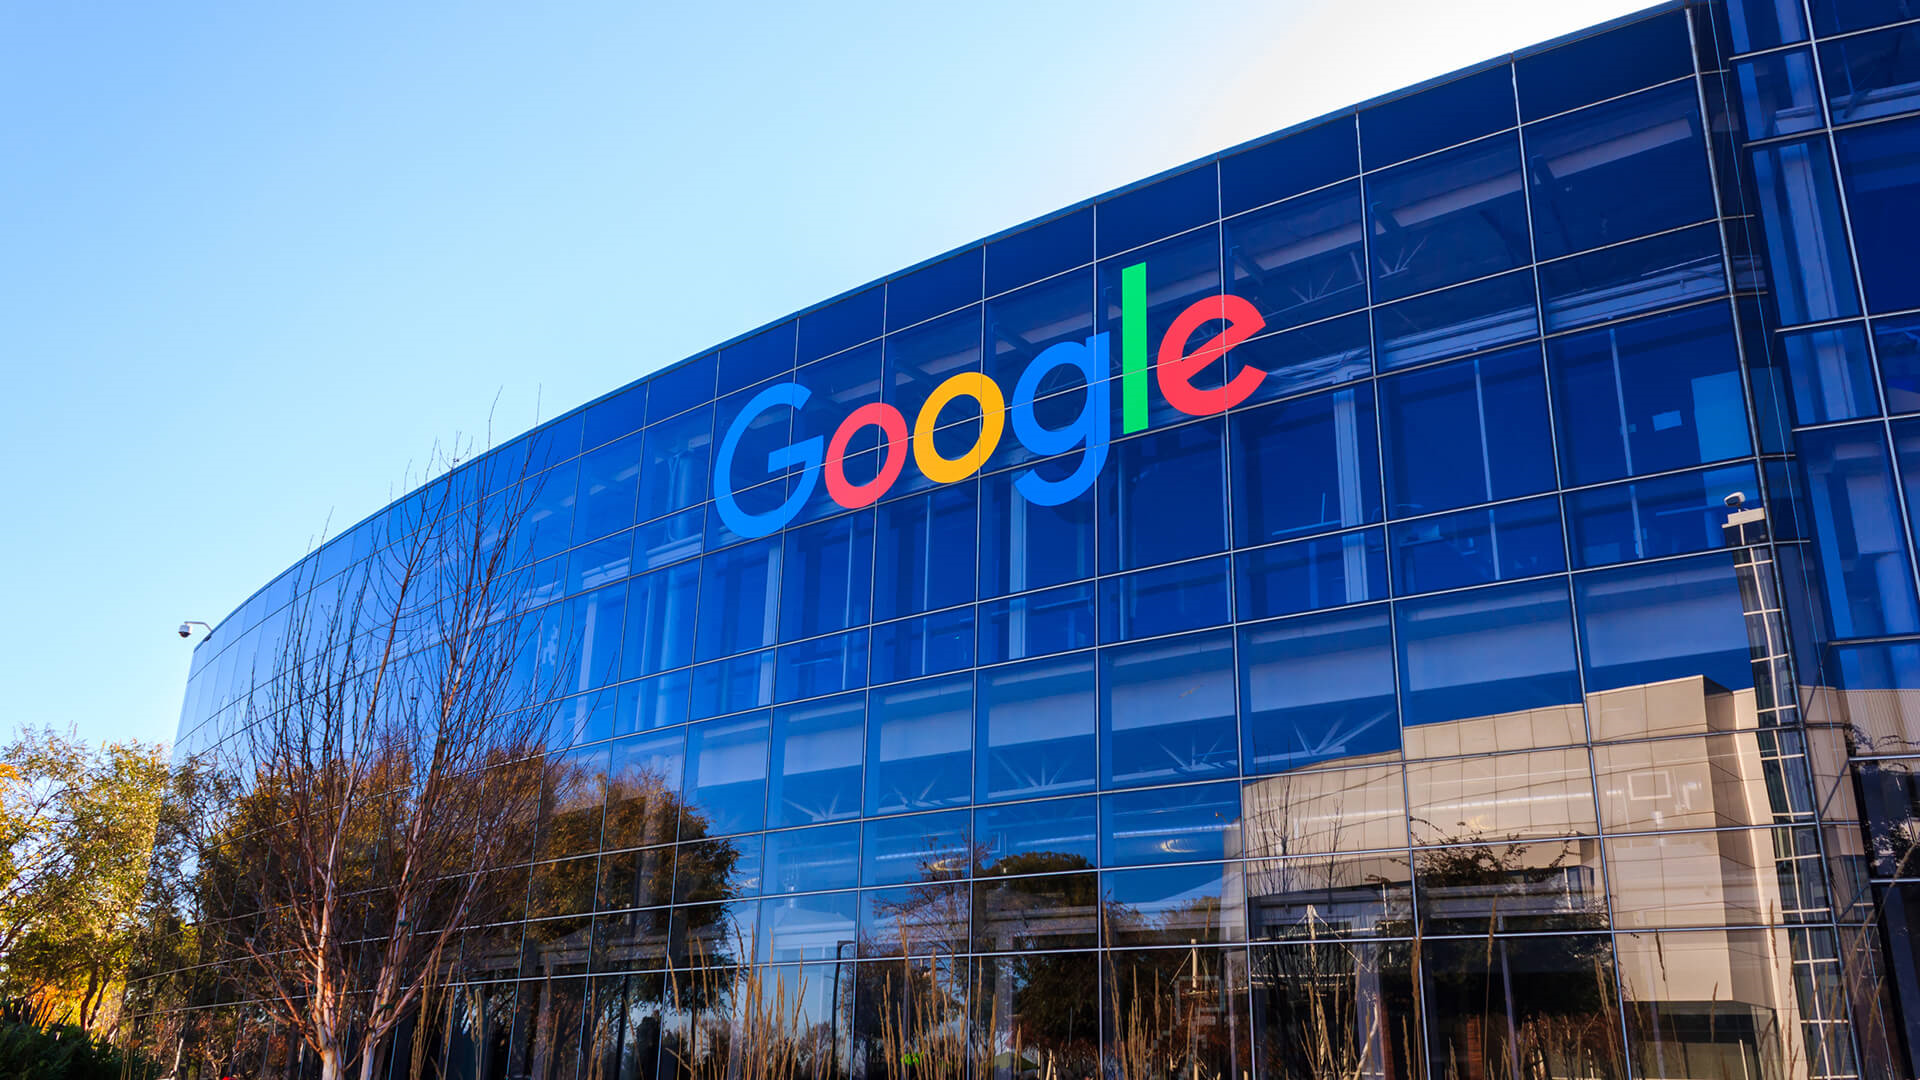 Google is retiring the AdWords & DoubleClick brands in a major rebranding aimed at simplification